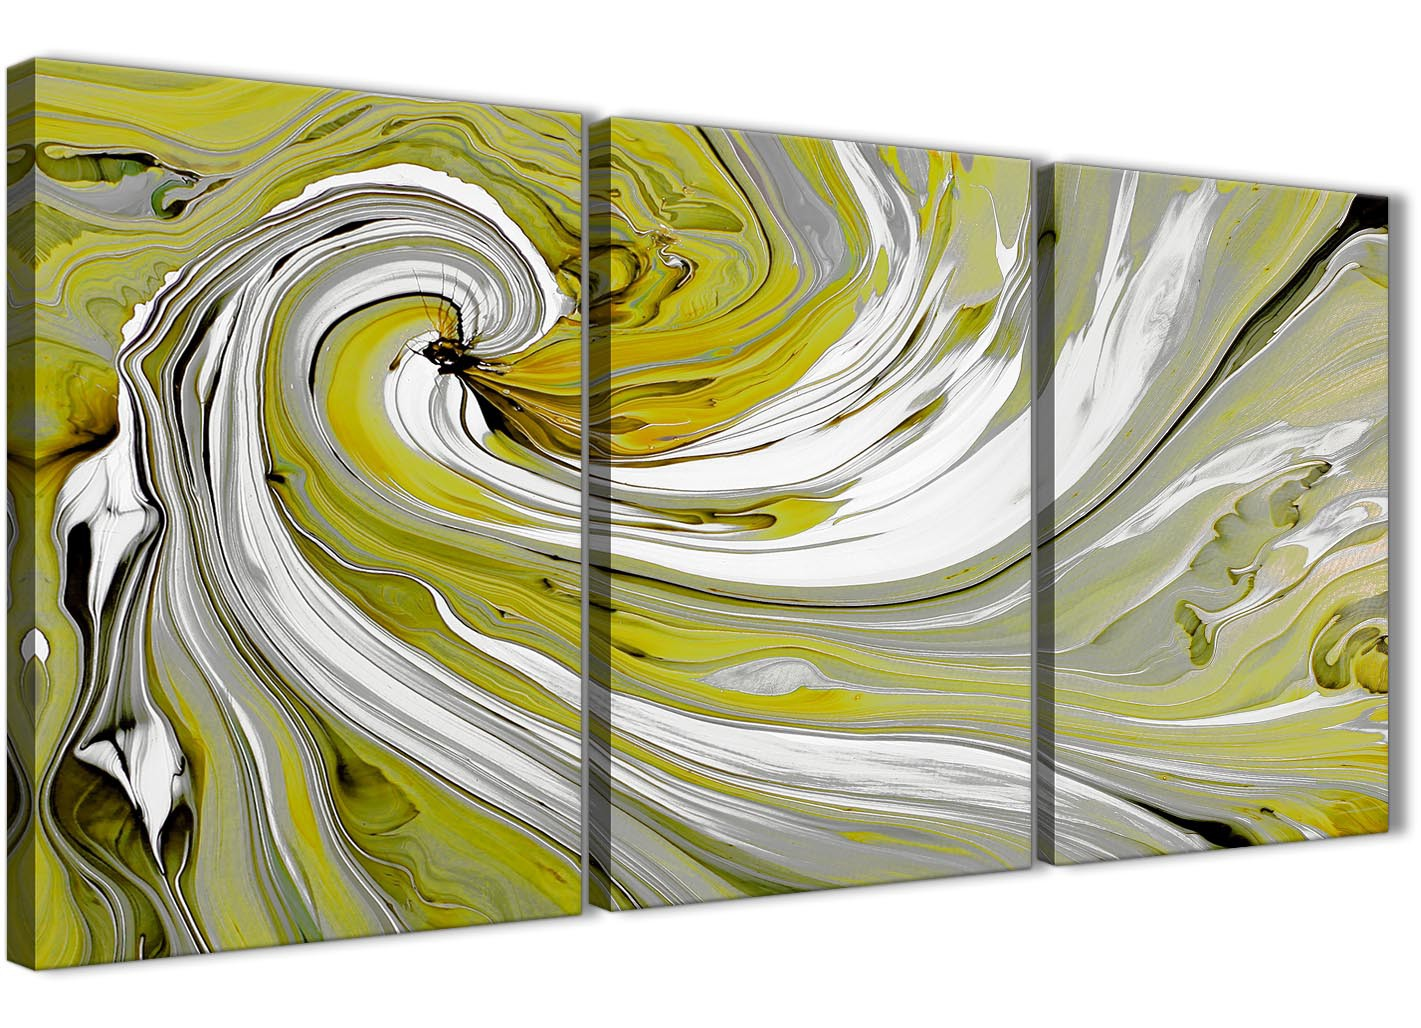 Lime Green Swirls Modern Abstract Canvas Wall Art Split 3 Piece 125cm Wide 3351